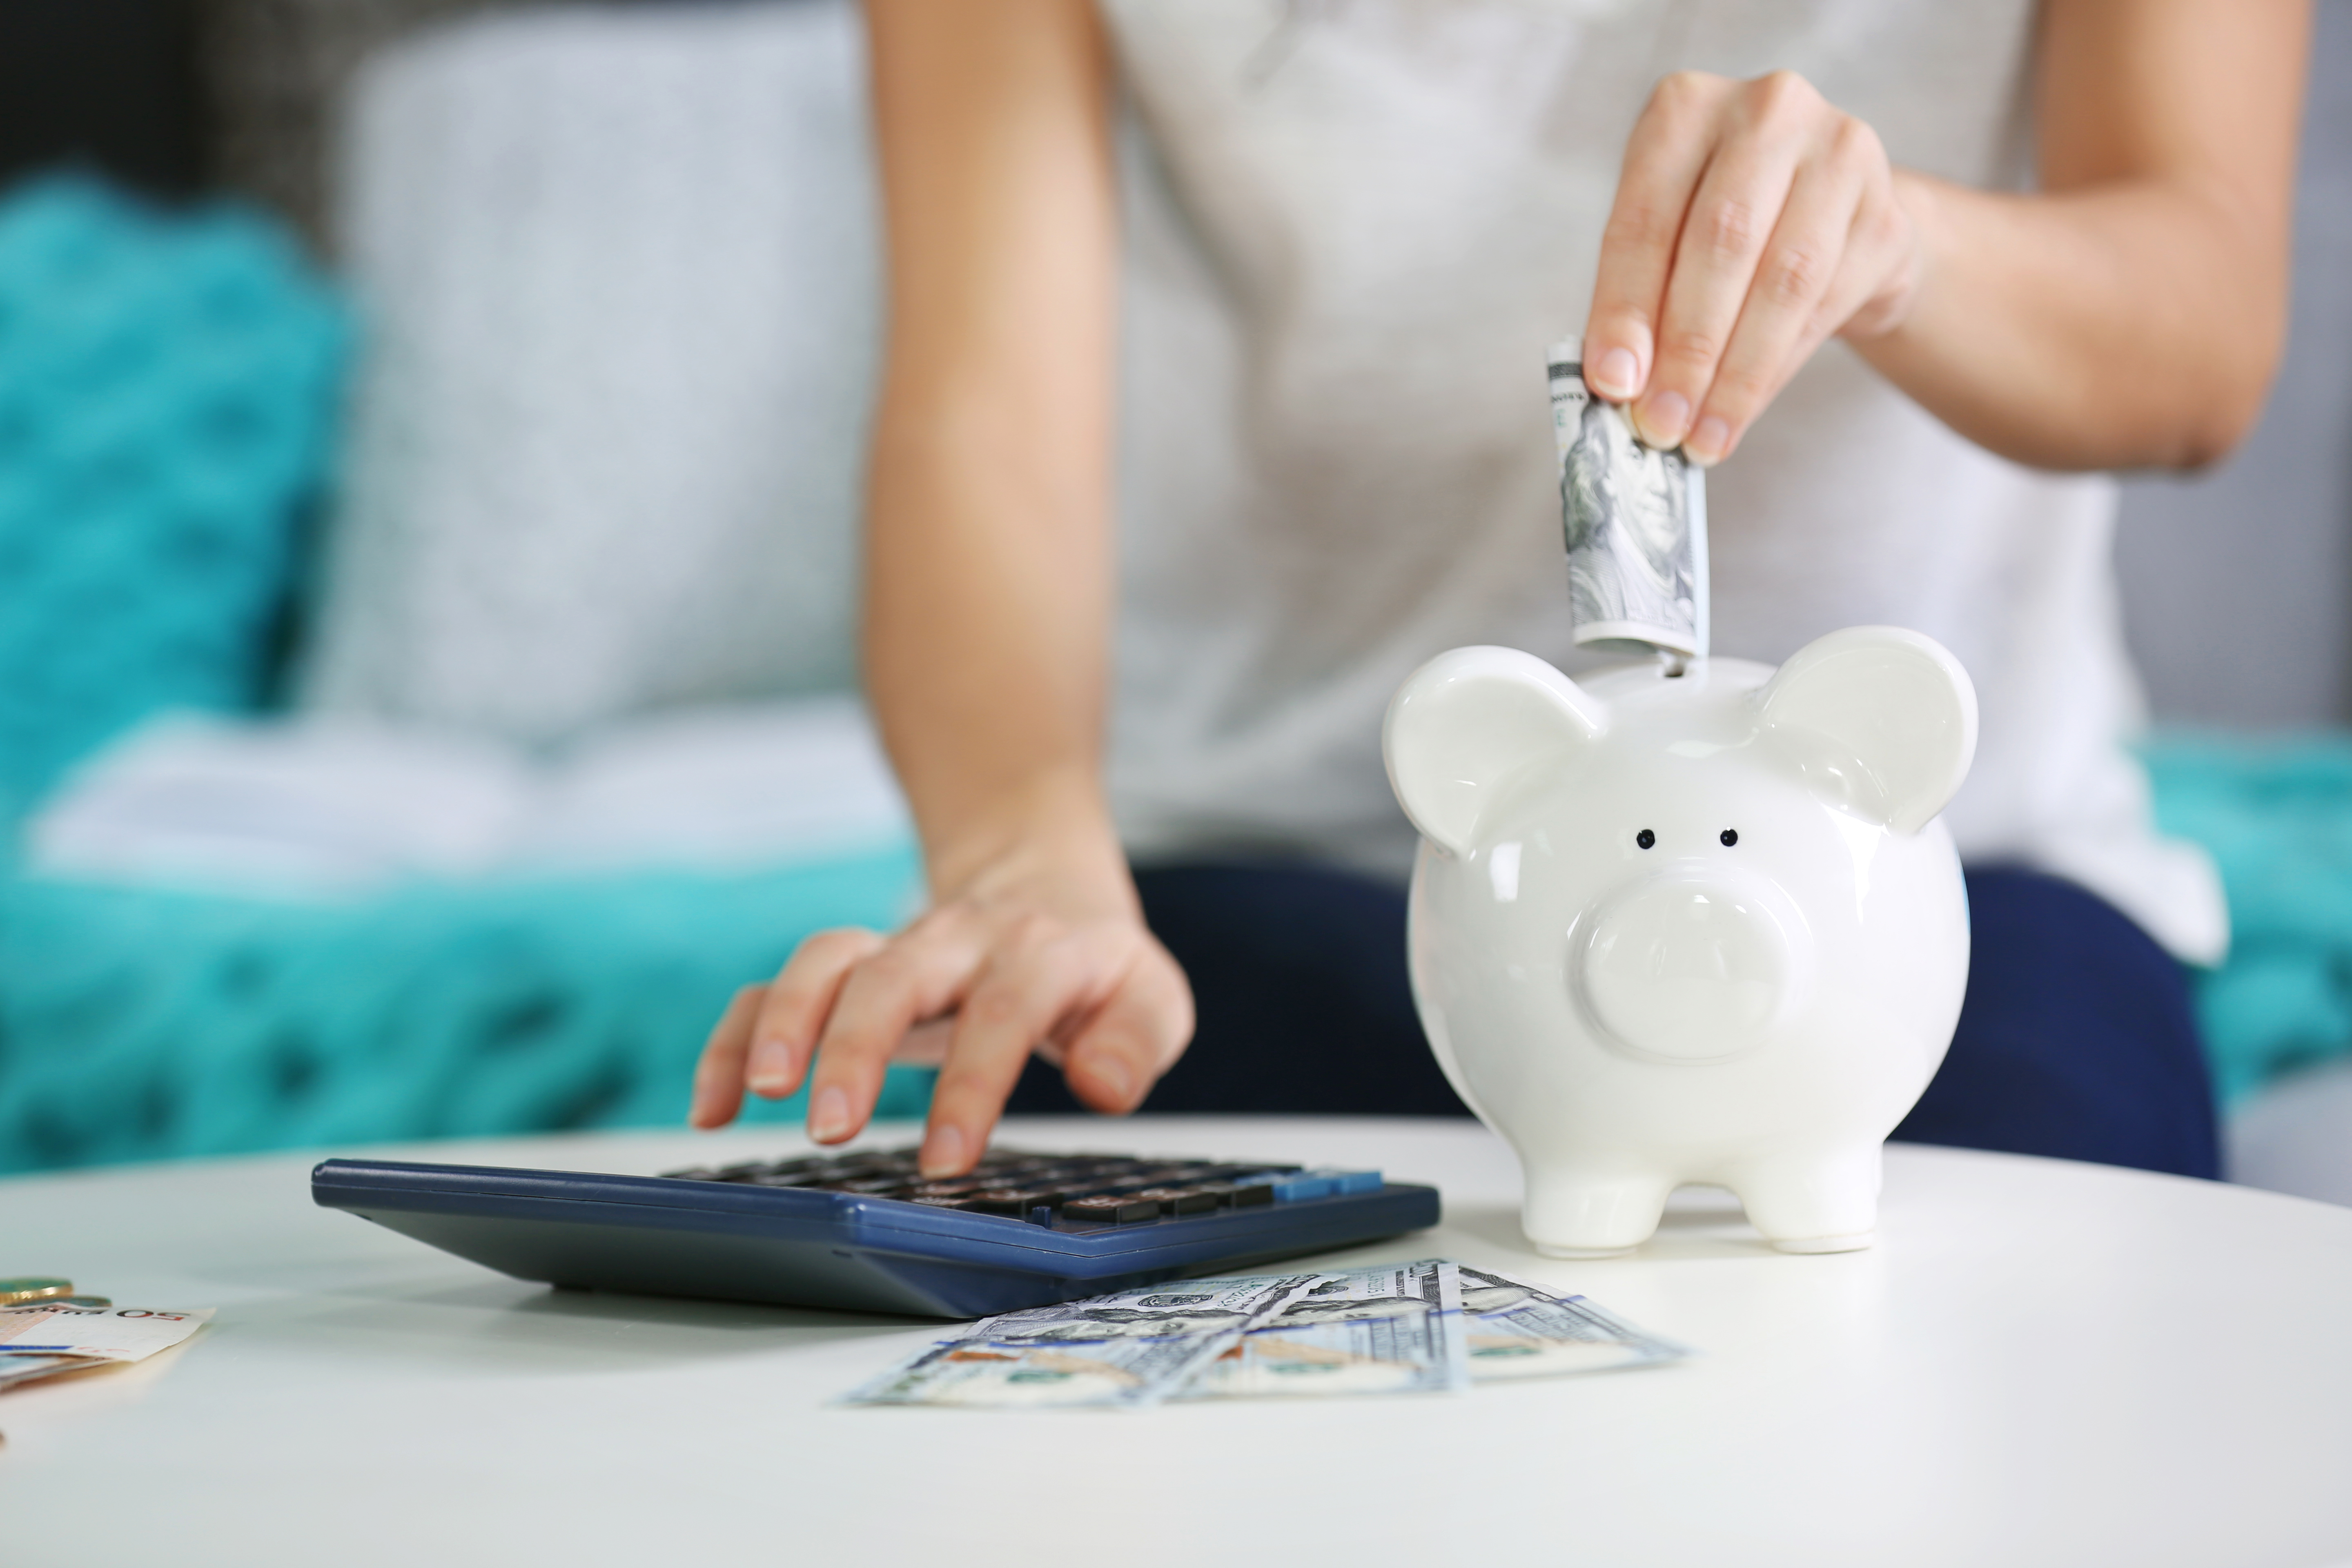 A person sitting down and using a calculator while putting money into a piggy bank with their other hand.